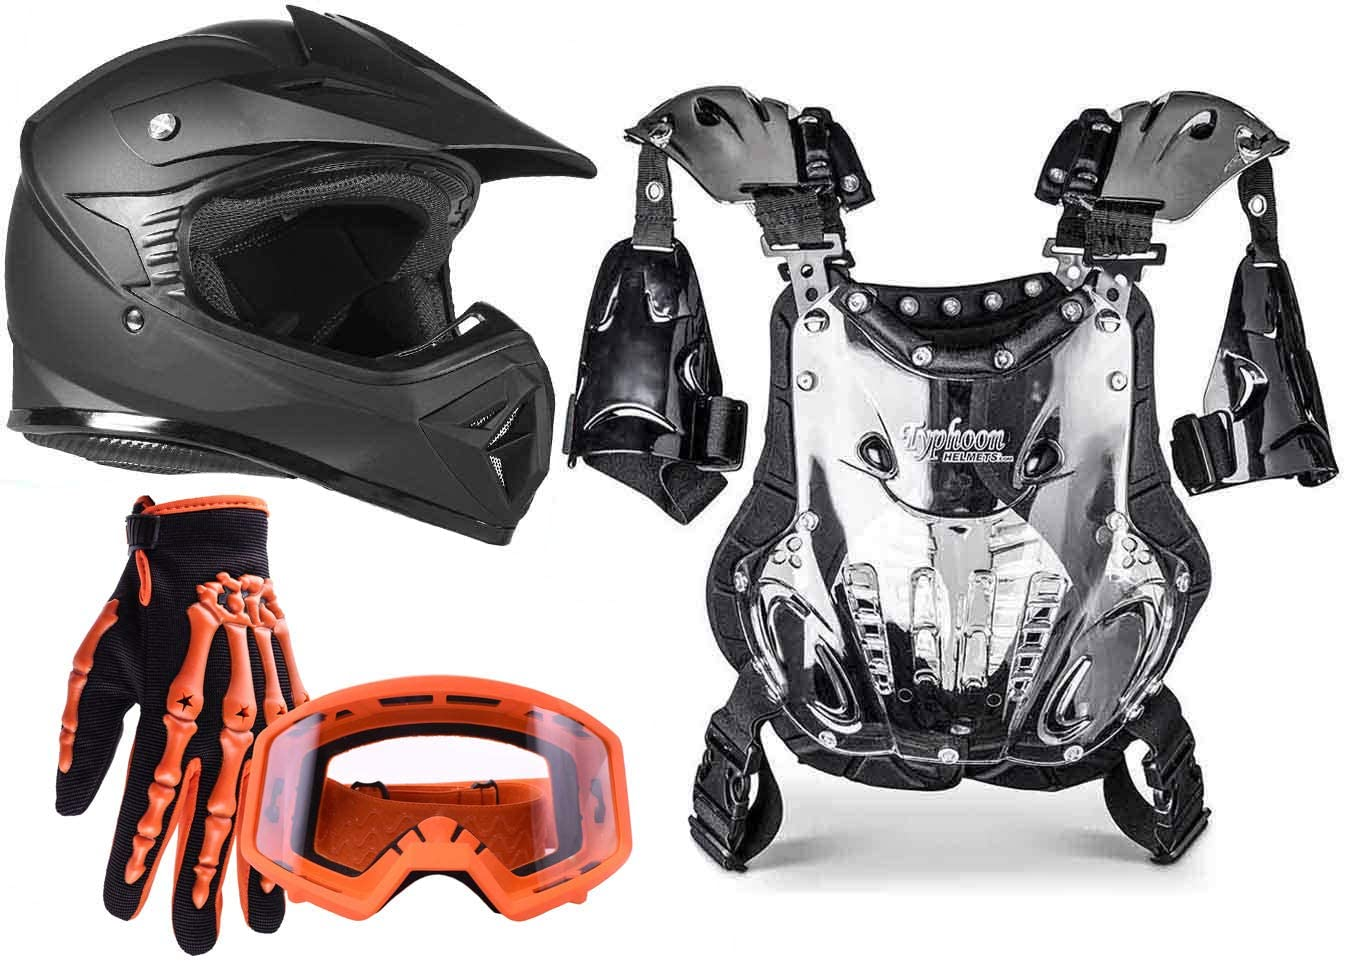 Typhoon Kids Pee Wee Offroad Helmet Gloves Goggles and Chest Protector GEAR COMBO Orange, Matte Black (small)